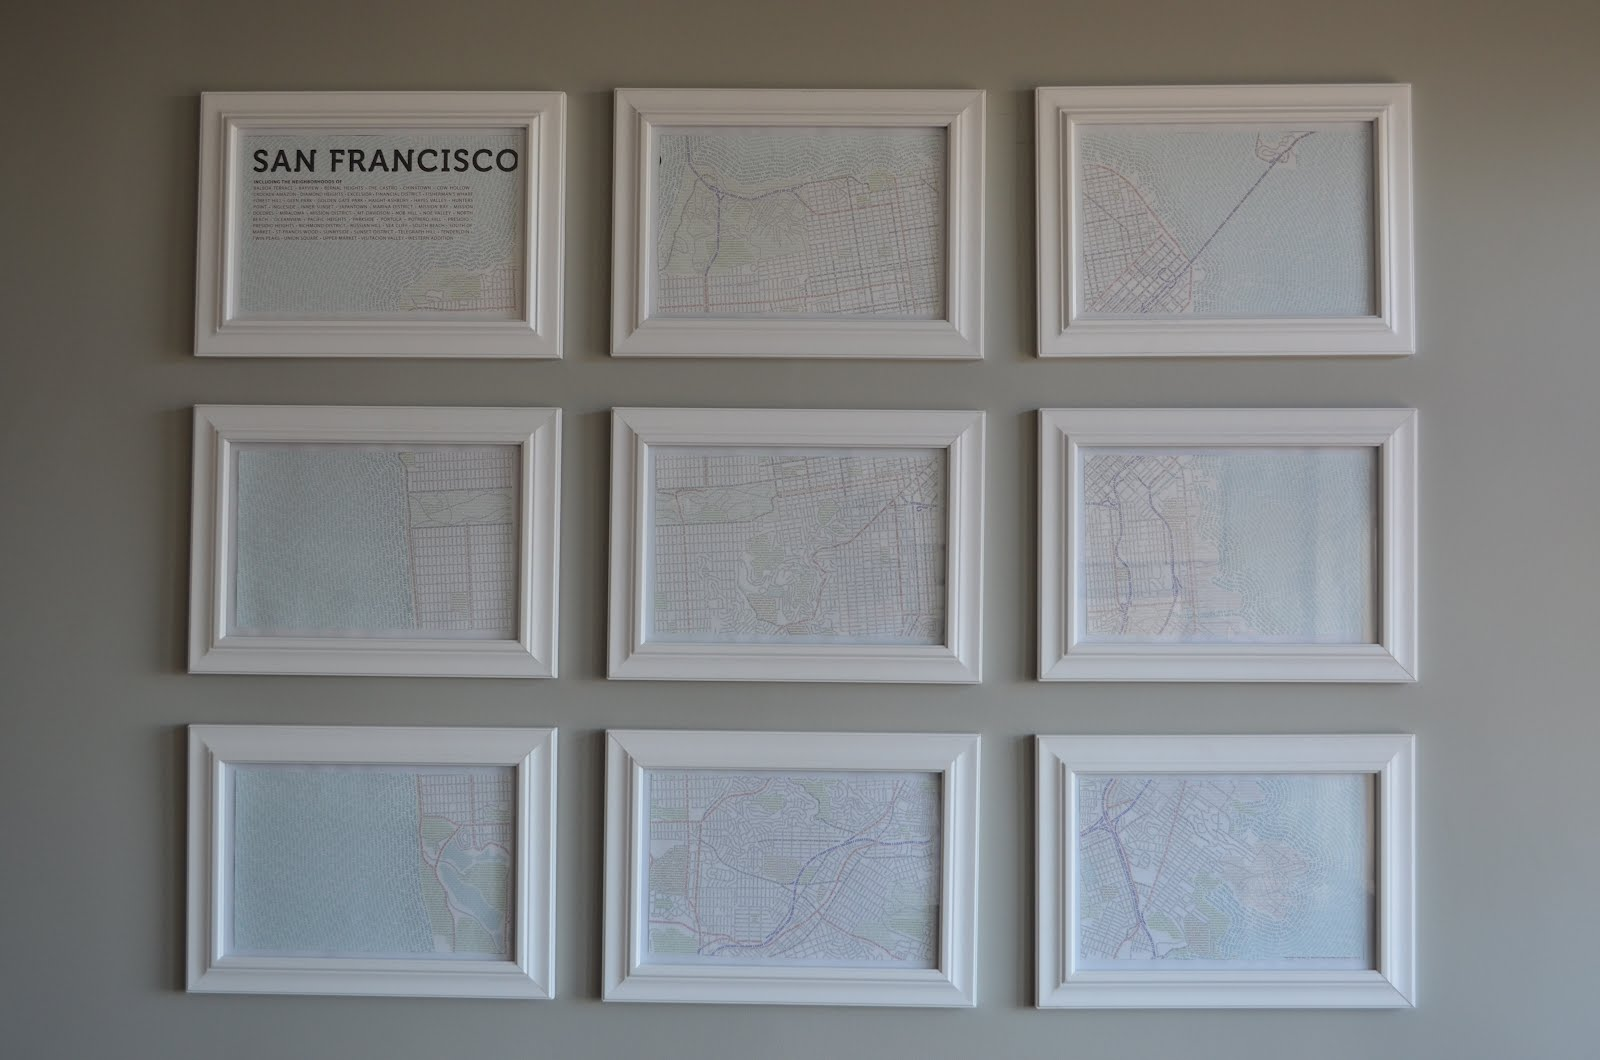 Map Wall Art DIY | They So d Events | Wine Country & San ... Diy Map Art on life map art, pinterest map art, diy alice in wonderland cake, map wall art, diy gifts for men, wood map art, framed map art, event art, usa map art, diy decorate with maps, map canvas art, recycled map art, mind map art, vintage map art, etsy map art, united states map art, diy glass painting ideas, steampunk map art, diy one year anniversary gifts, travel map art,